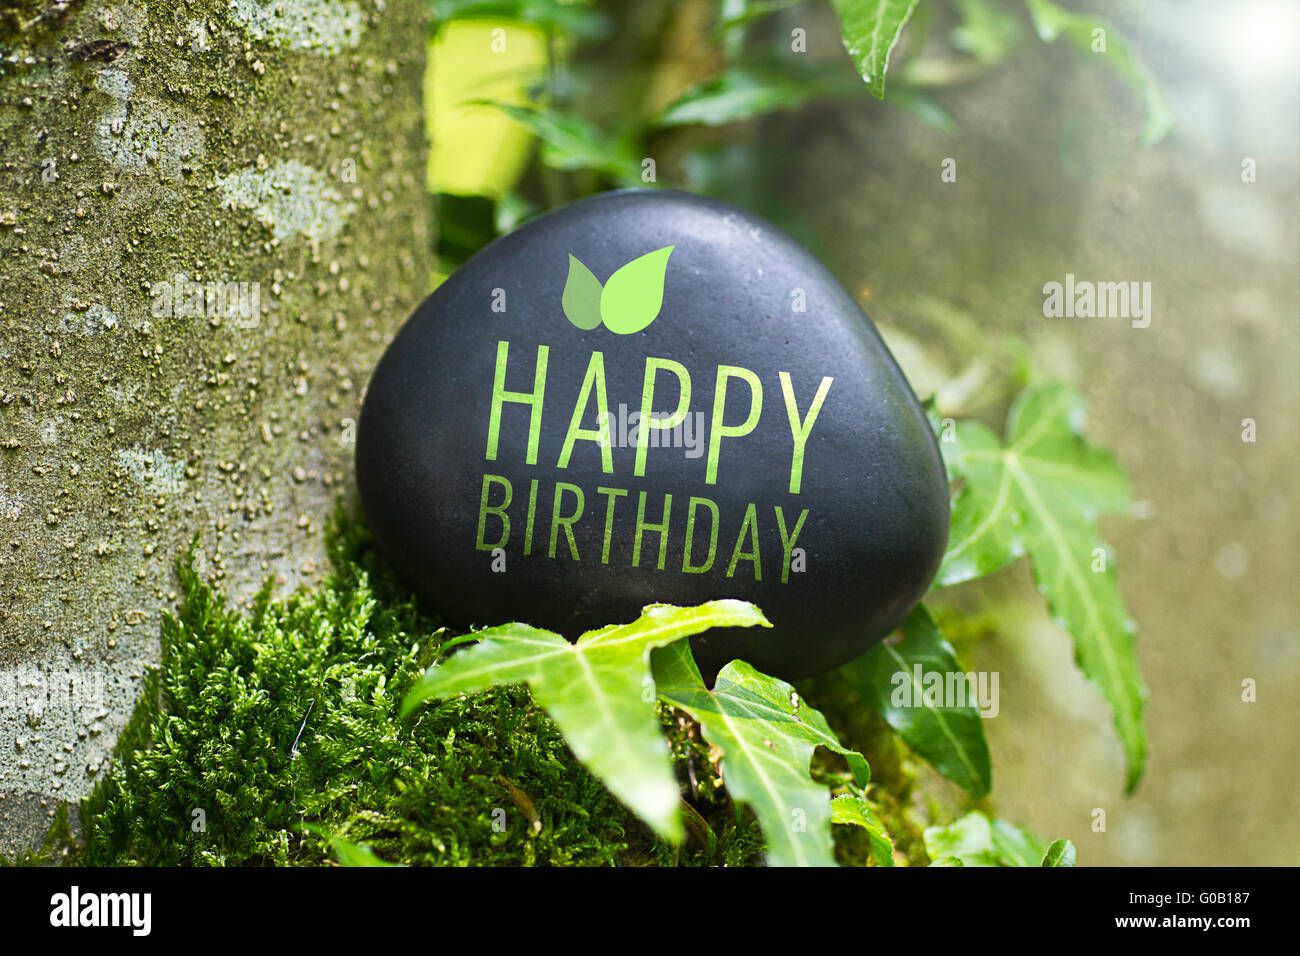 The Word Happy Birthday On A Stone In Nature Stock Photo Alamy